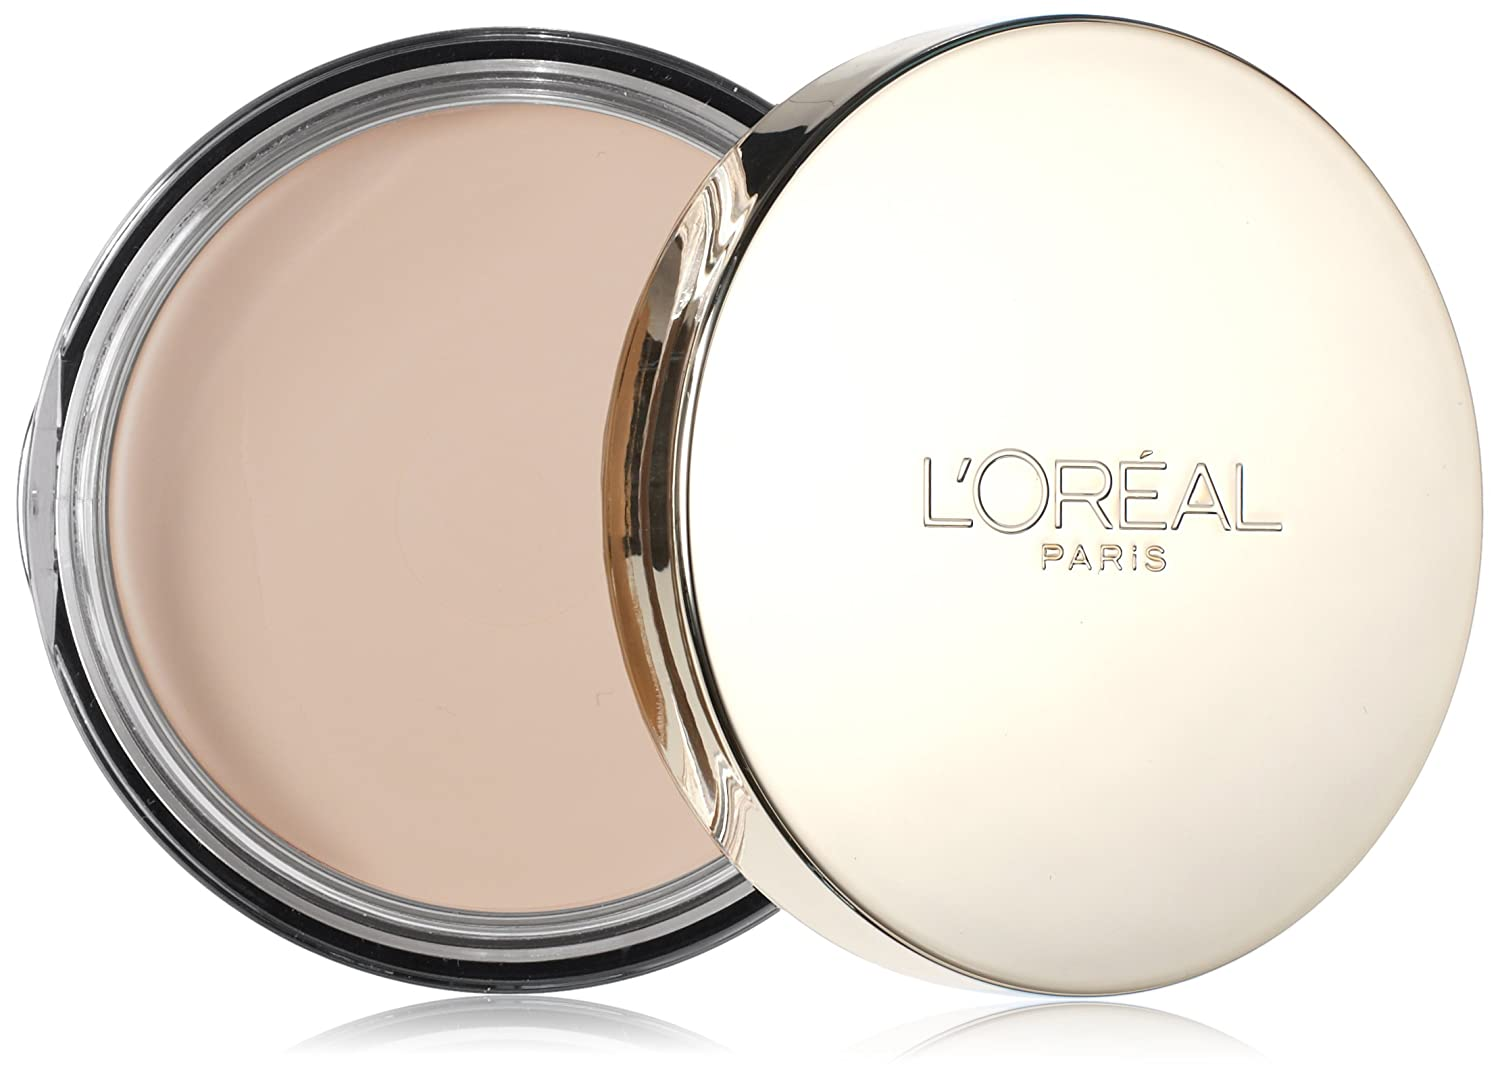 L'OREAL VISIBLE LIFT RAPID AGE-REVERSING MAKEUP #123 CLASSIC IVORY B0084A5QWU